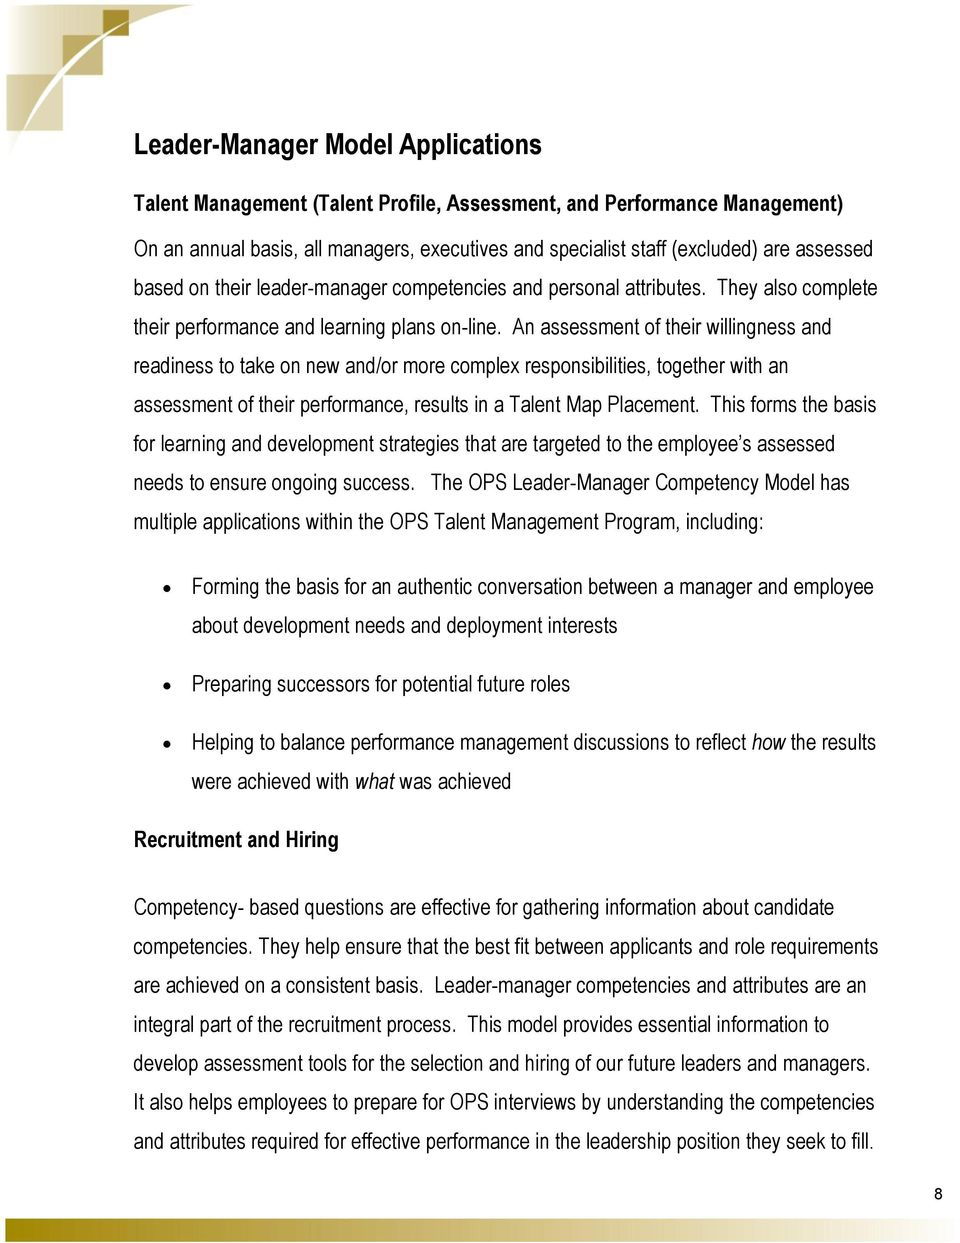 An assessment of their willingness and readiness to take on new and/or more complex responsibilities, together with an assessment of their performance, results in a Talent Map Placement.